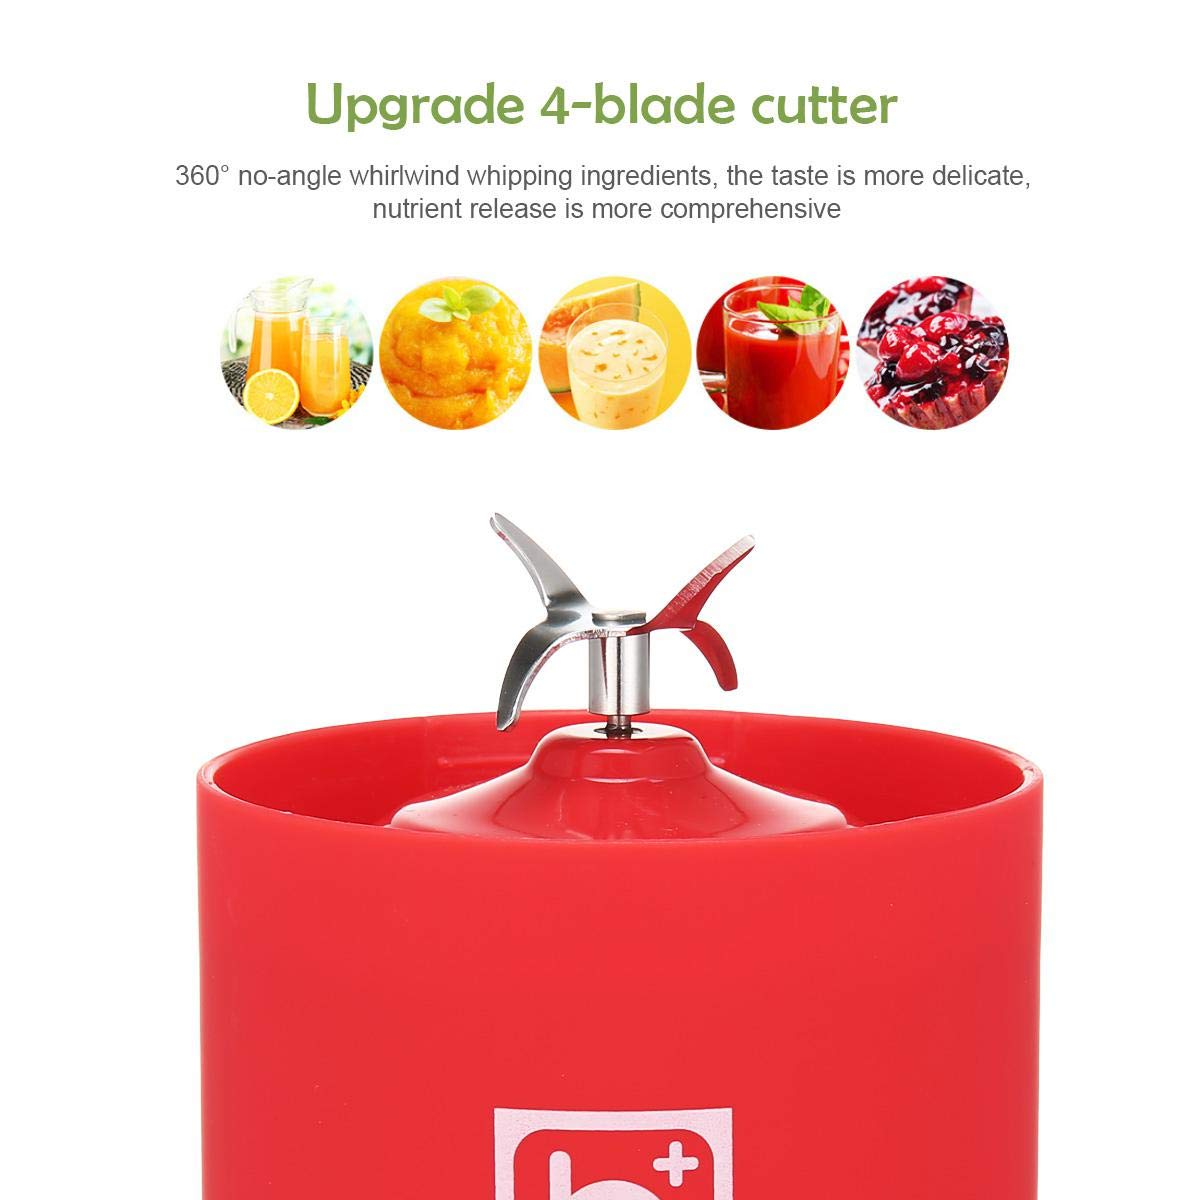 Electric Electric Mini Juicer Smoothie Maker for Fruit 500ml Portable USB Rechargeable Juicer Blender with 4 Blades Baby Food Baiwka Personal Blender Vegetables and Protein Shakes